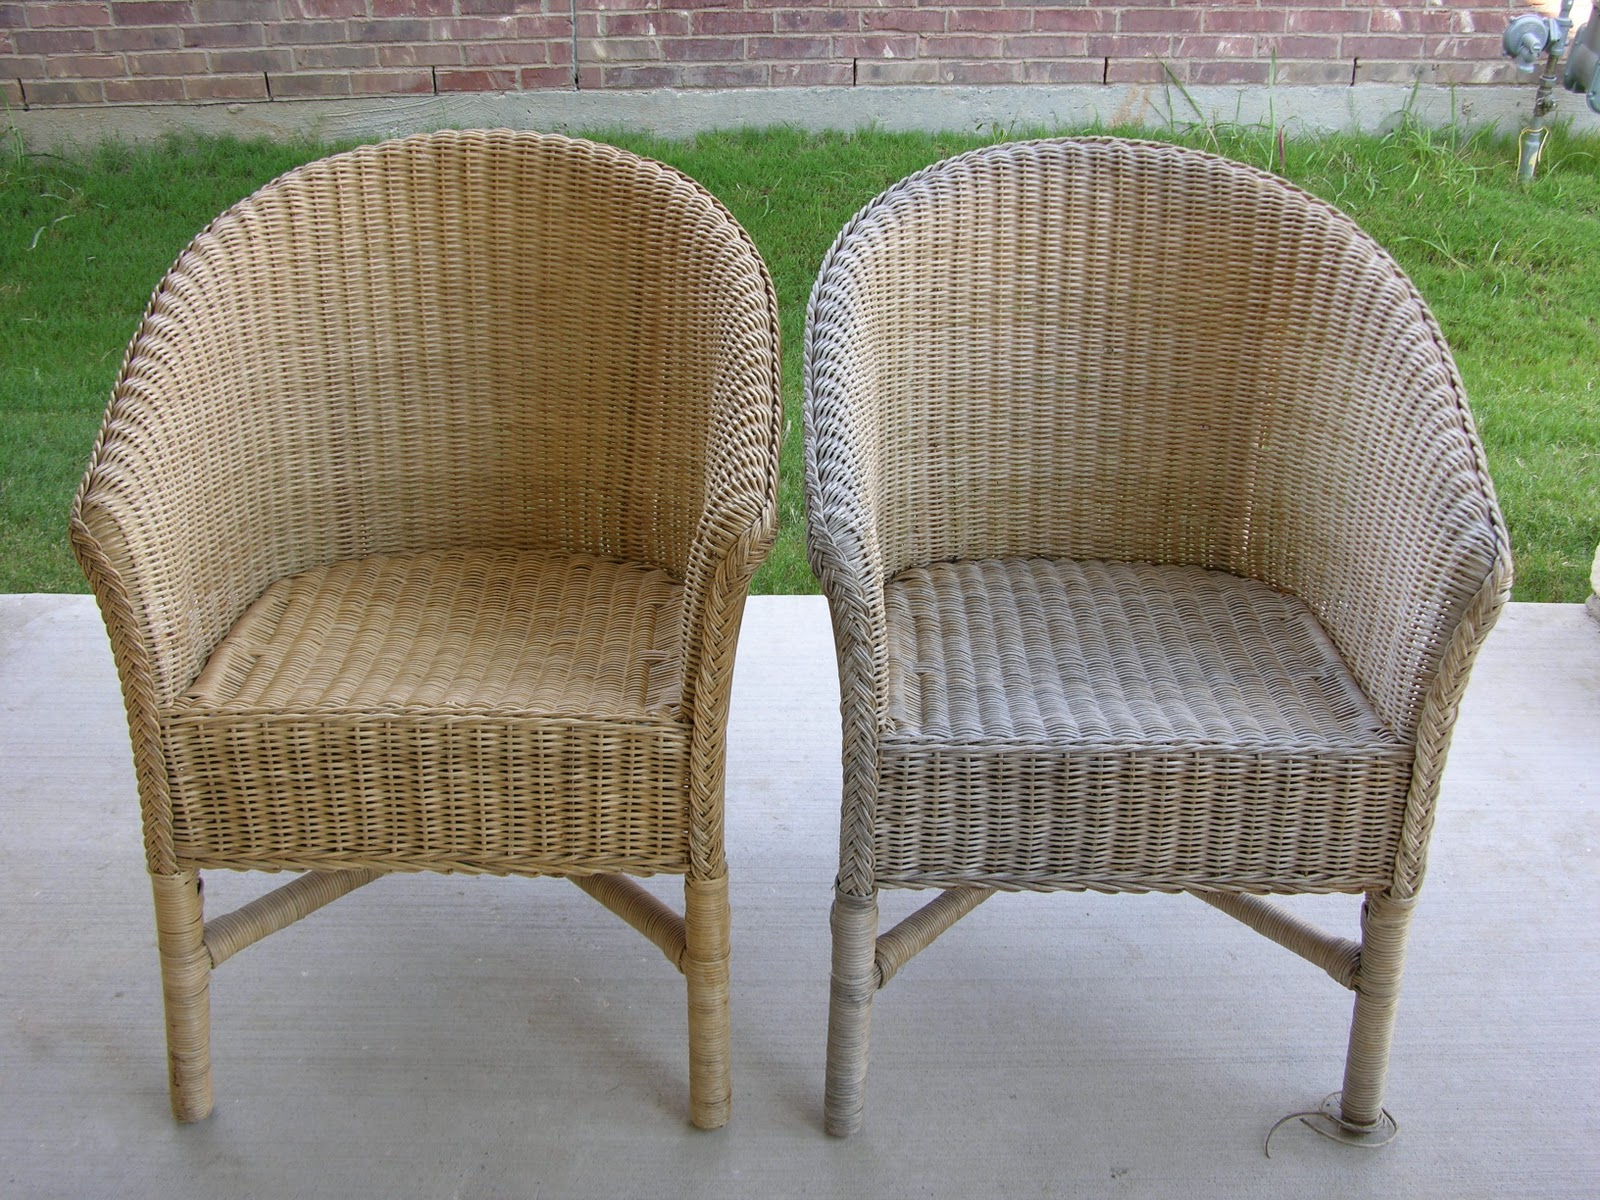 Creative Splatter  Painted Wicker Chairs Painted Wicker Chairs